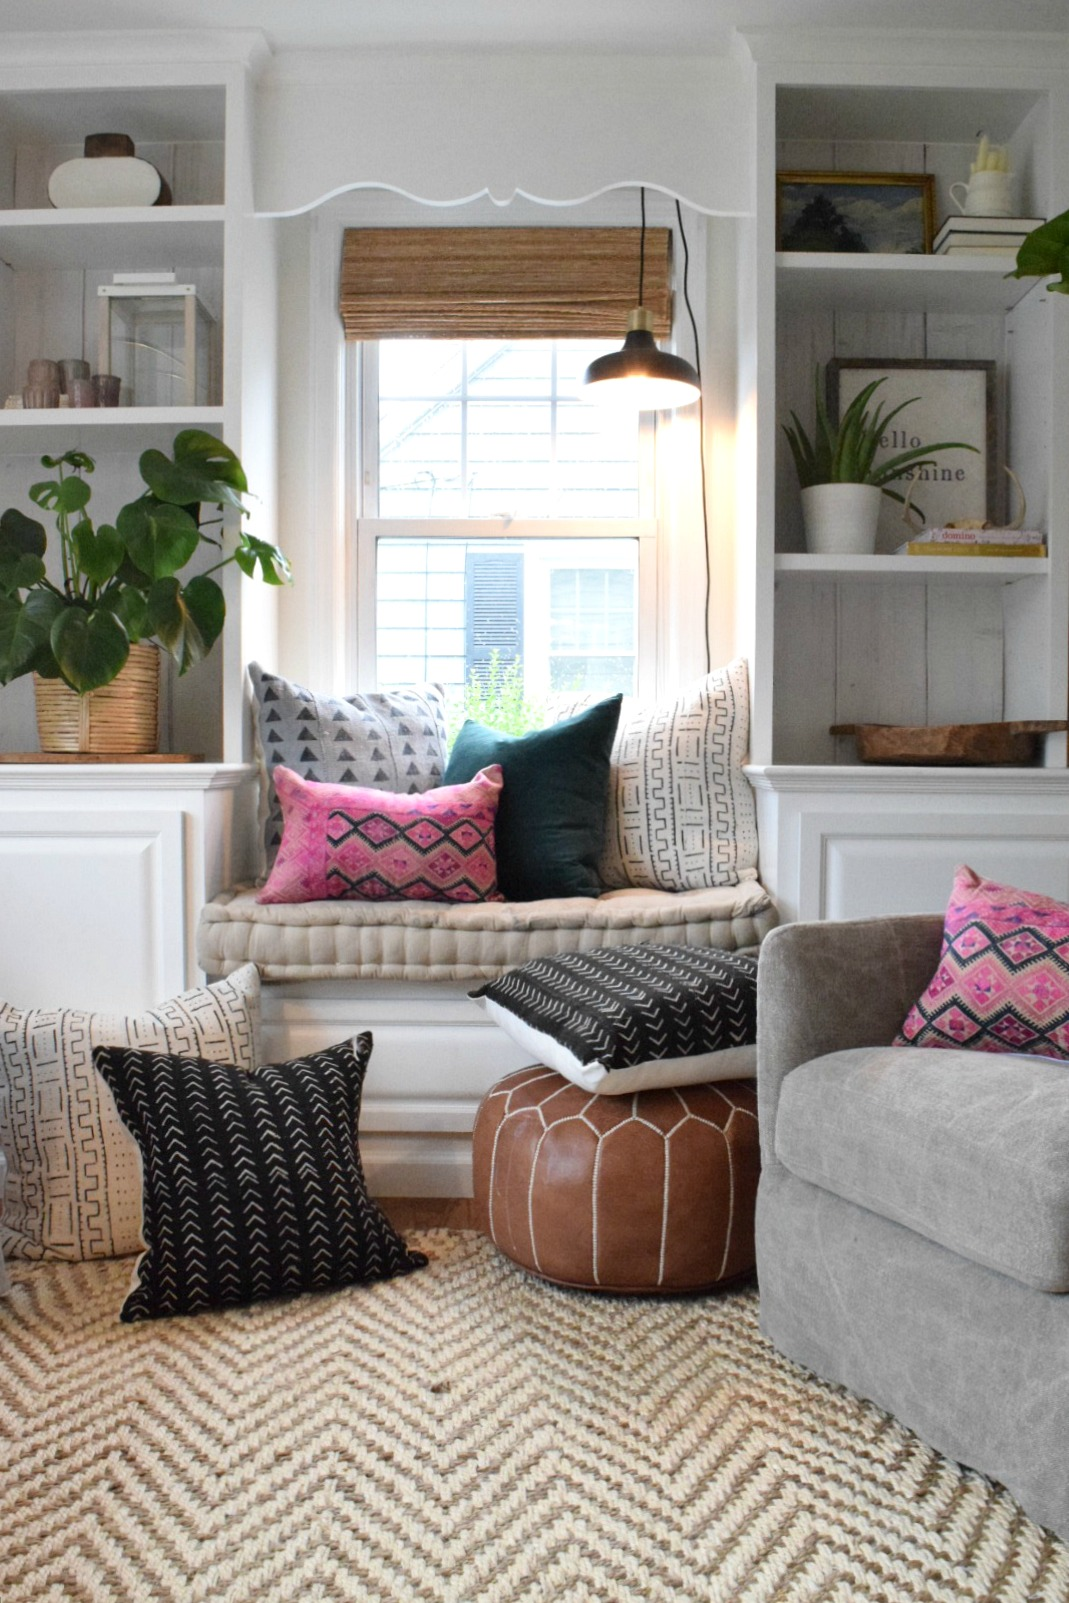 Top Place to Find Mud Cloth Pillows